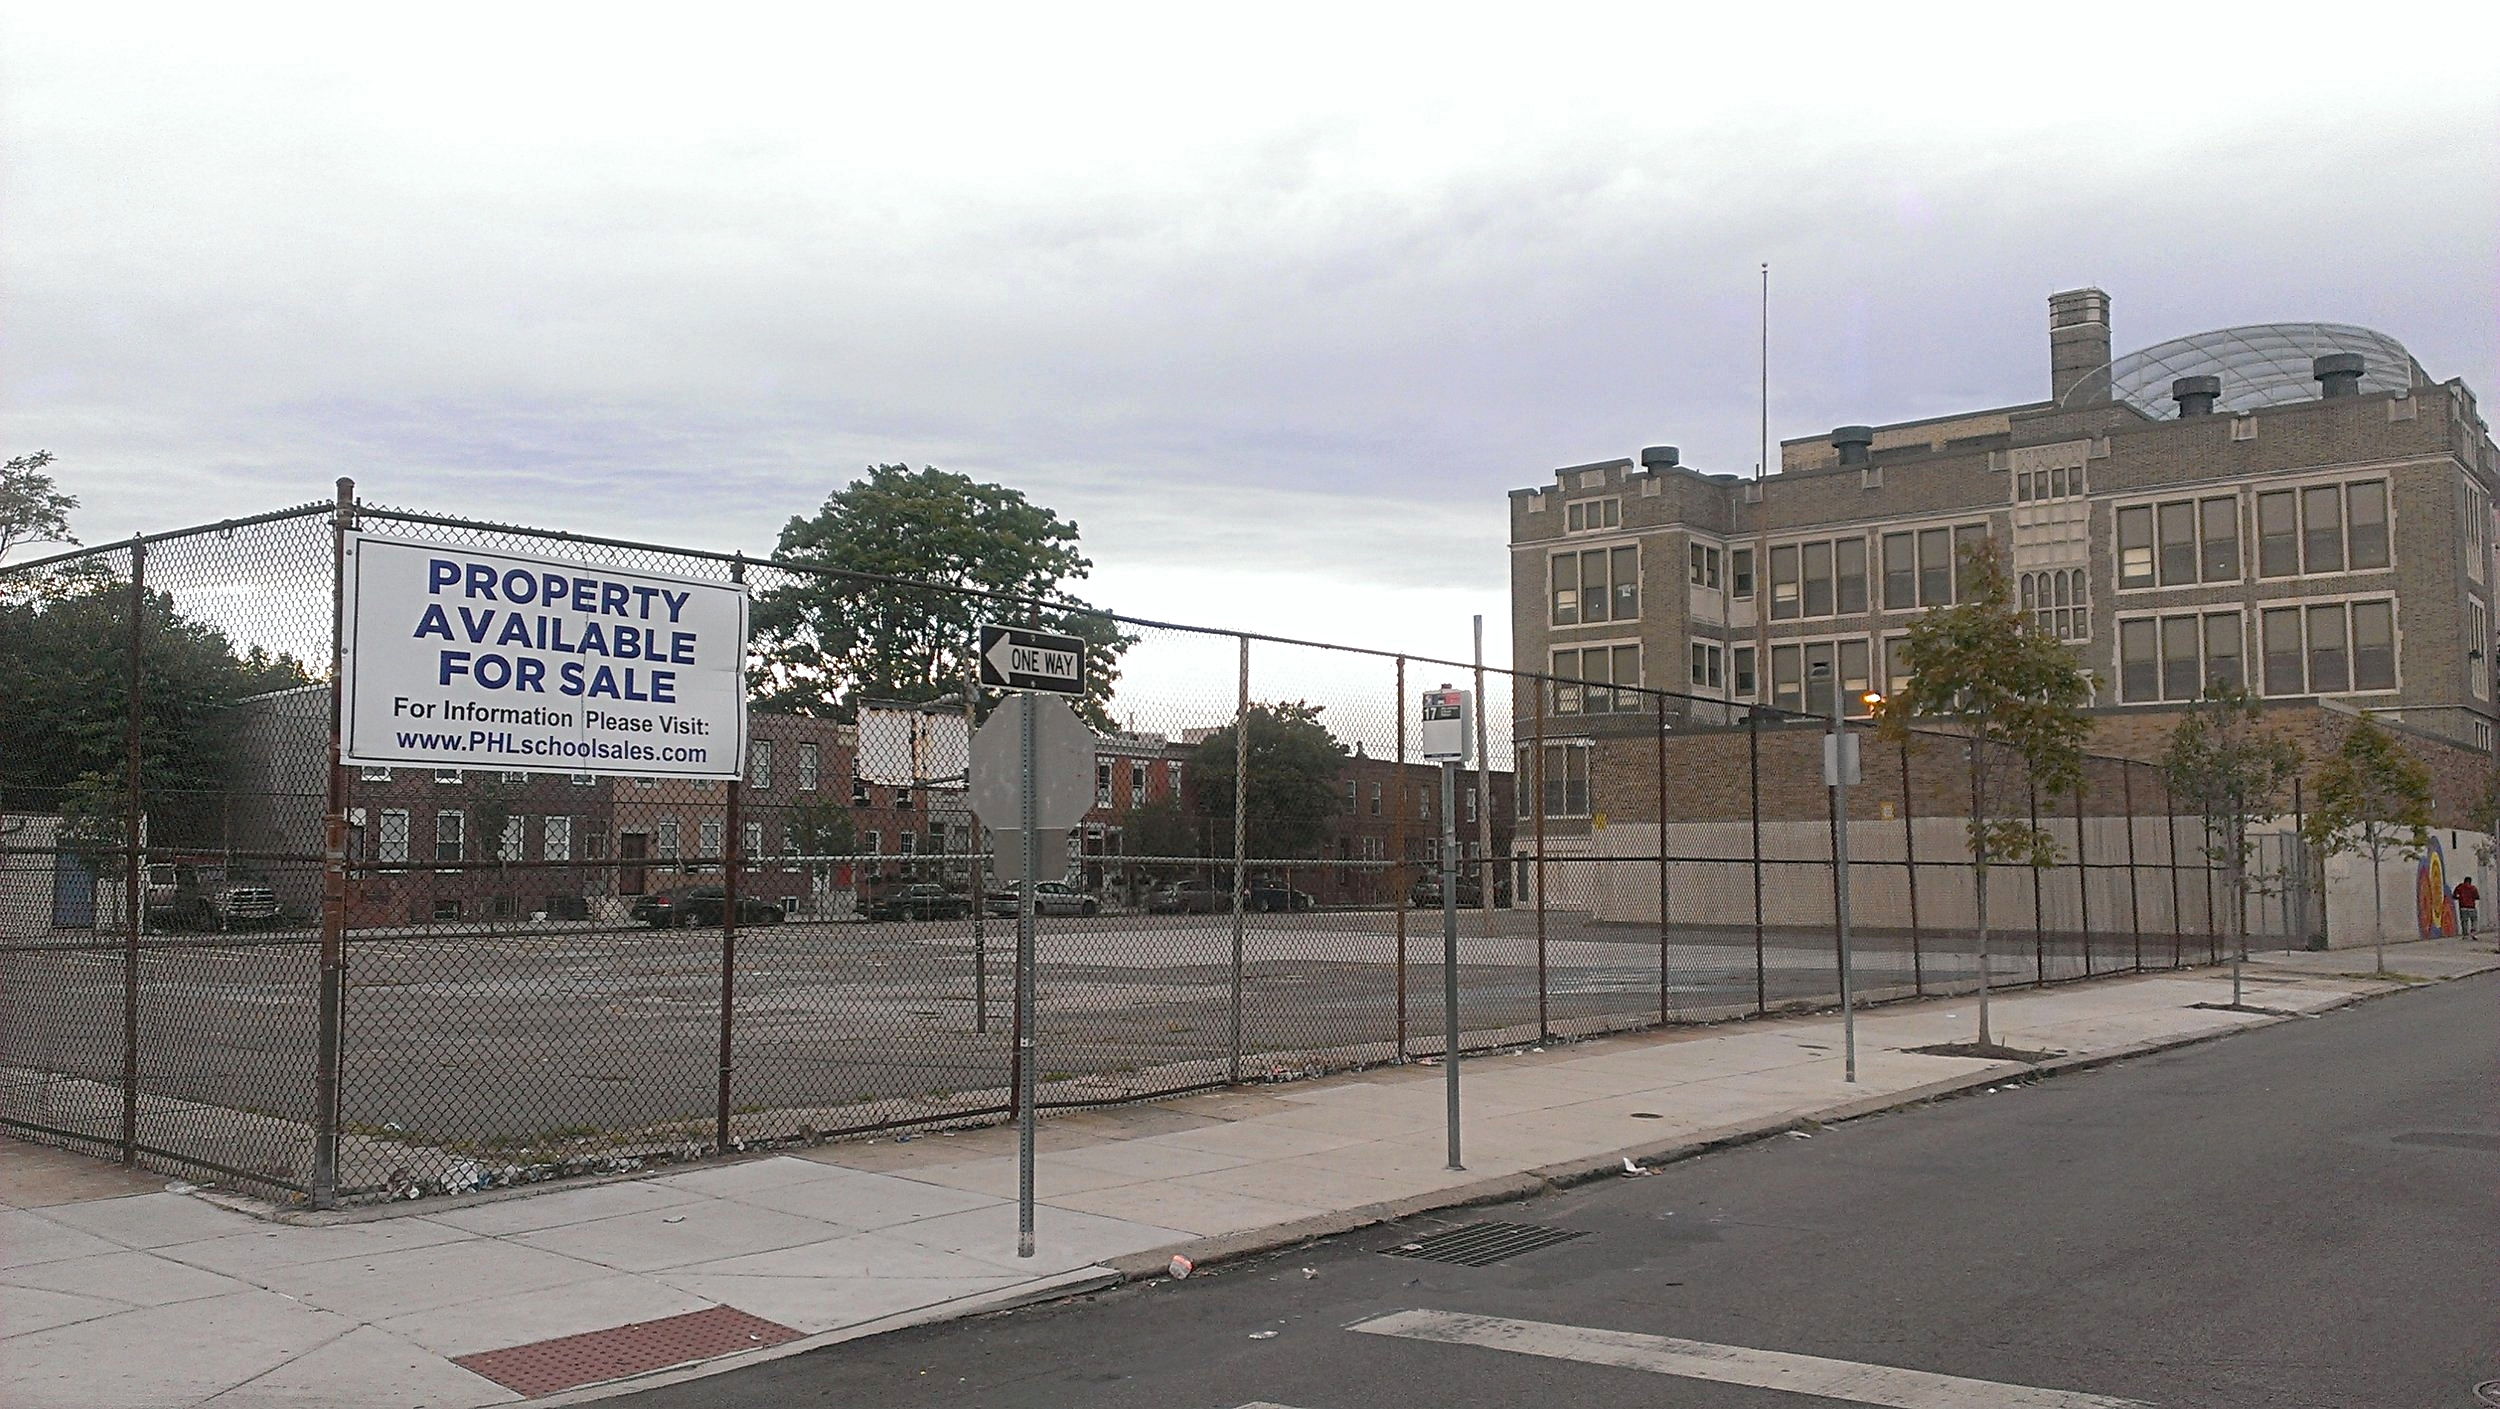 Neighborhood and School Change - gentrification and displacementmass public school closures, sales, and reuseschool-centered neighborhood revitalization